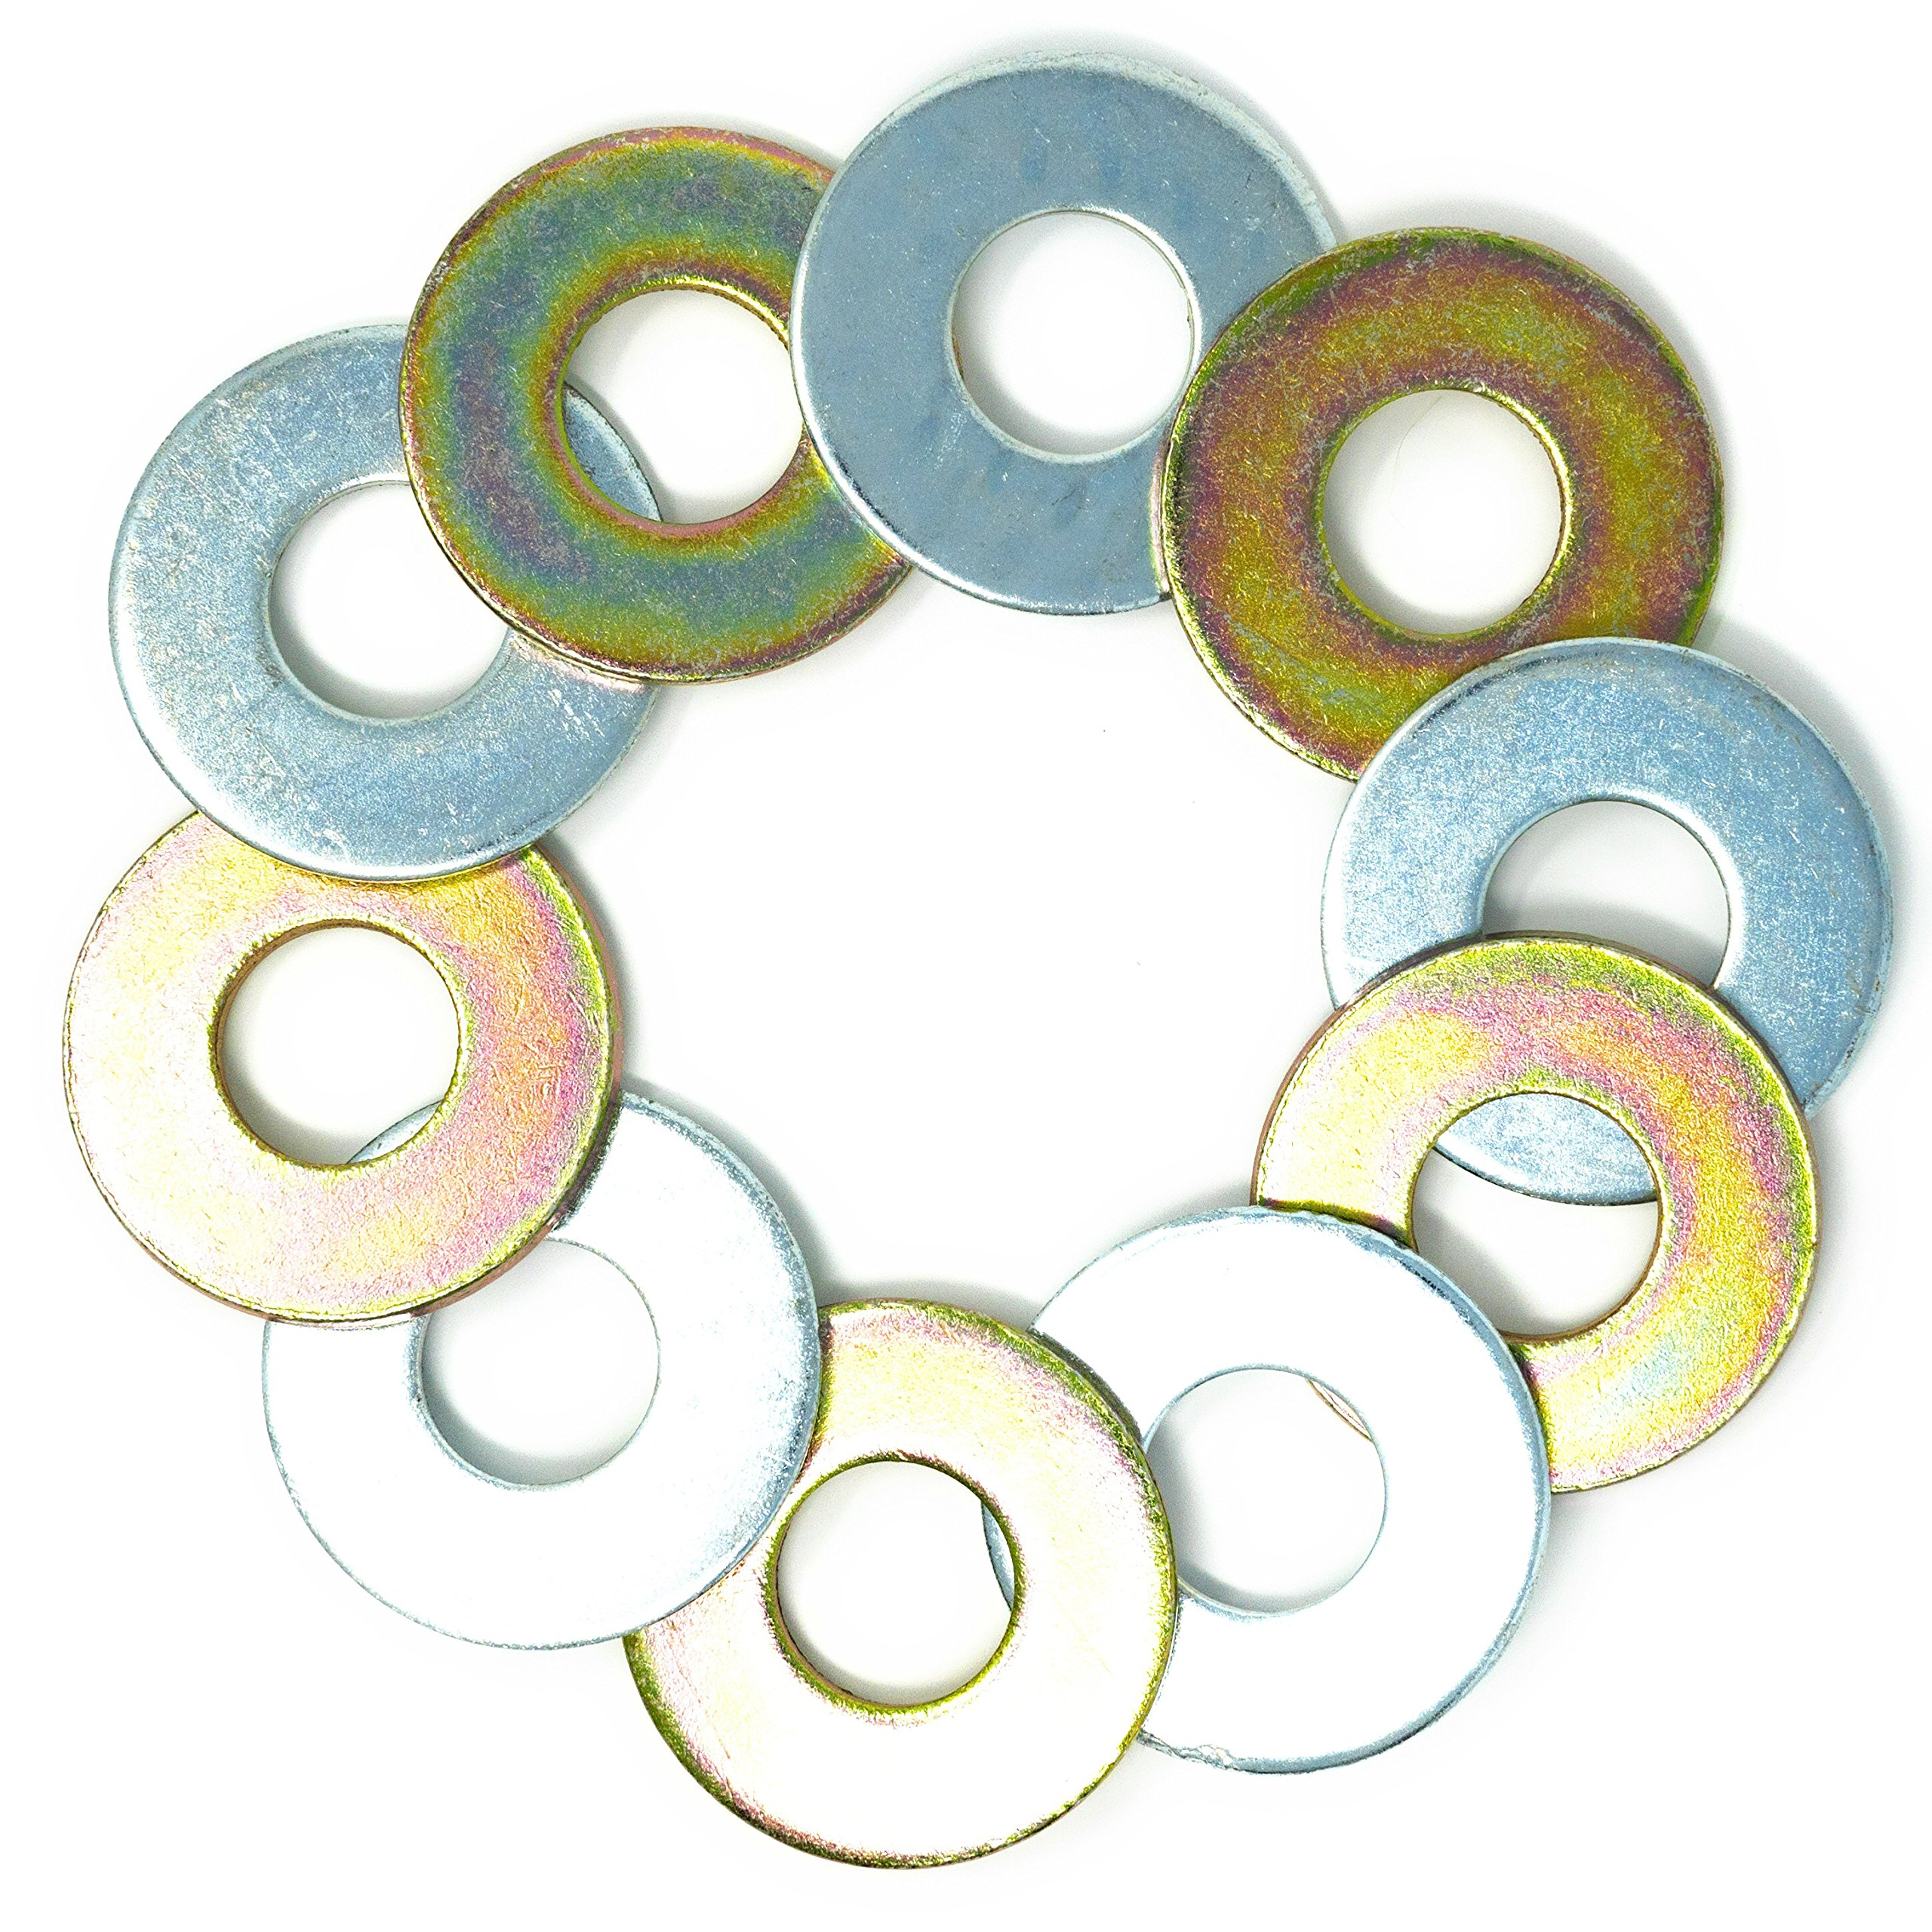 5 Yellow/5 Silver Replacement 2-1/2'' Washer Toss Pitching Game Washers (Zinc Coated)